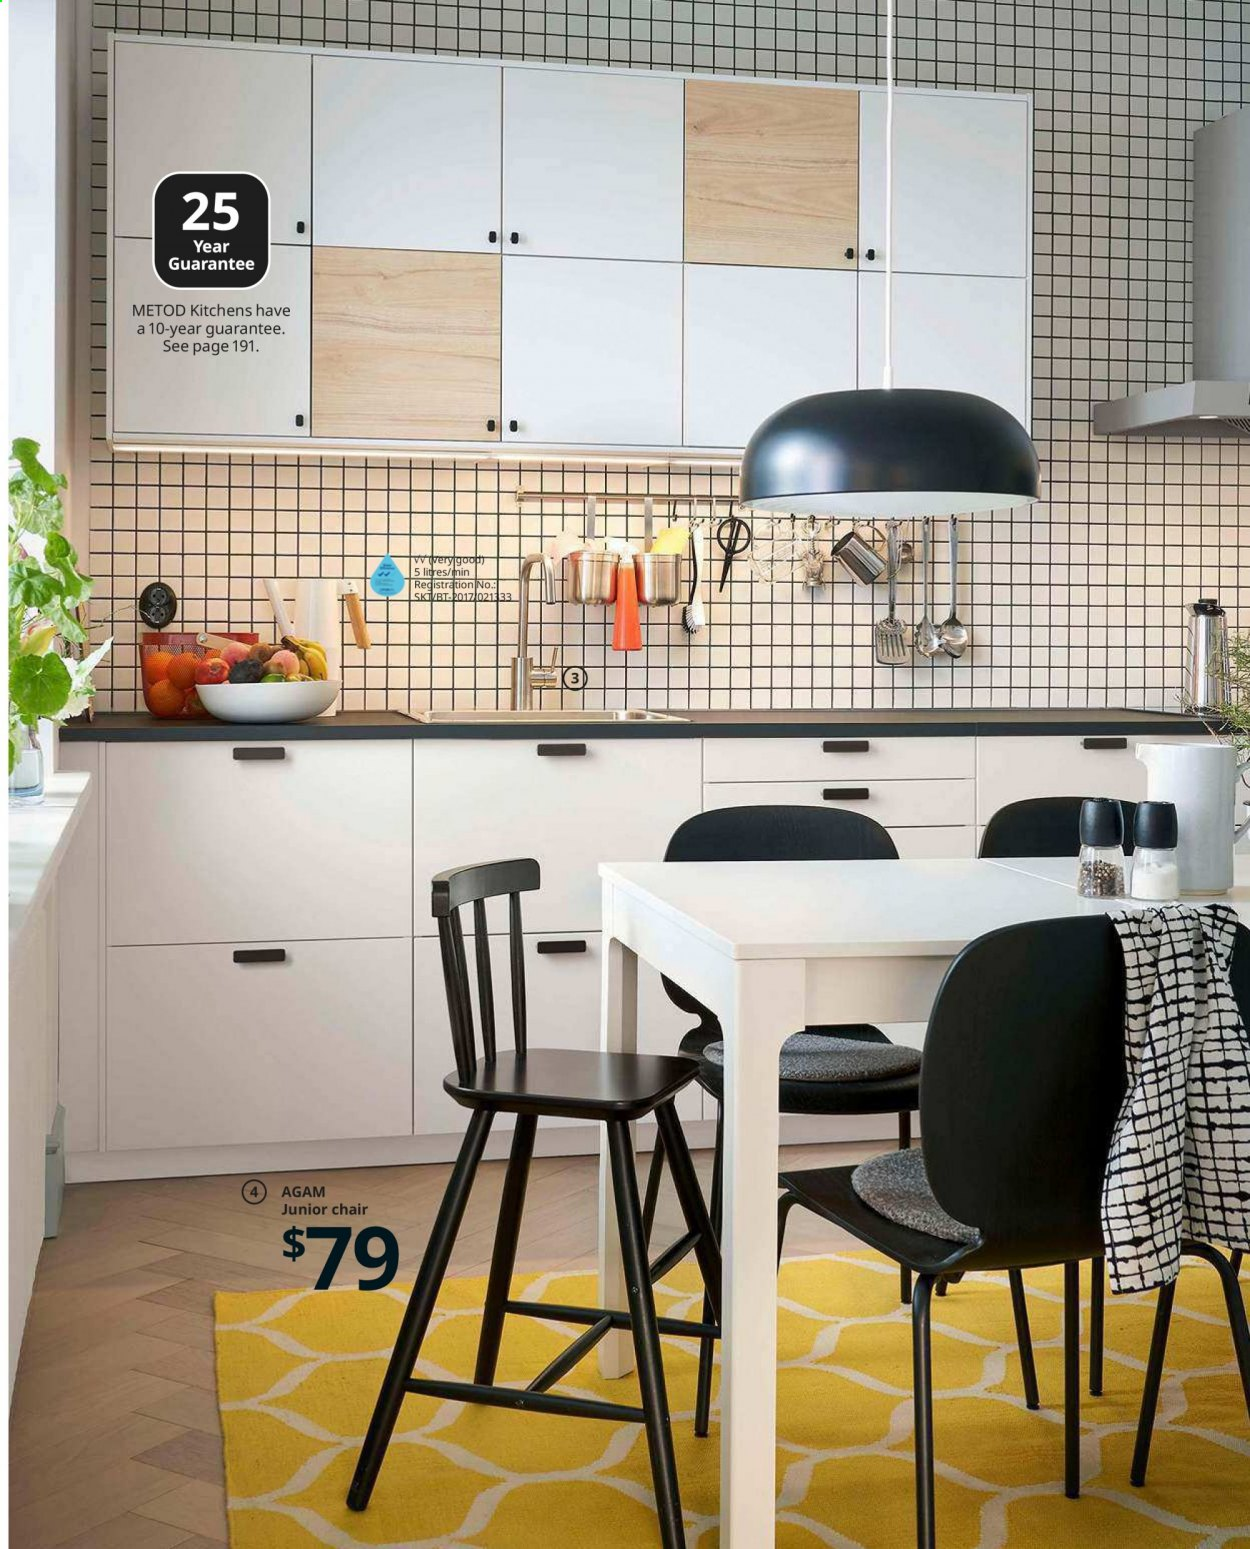 IKEA offer  - Sales products - cabinet, door, drawer, drawer fronts, lid, mixer, handles, chair, junior chair, powder, puzzle. Page 41.